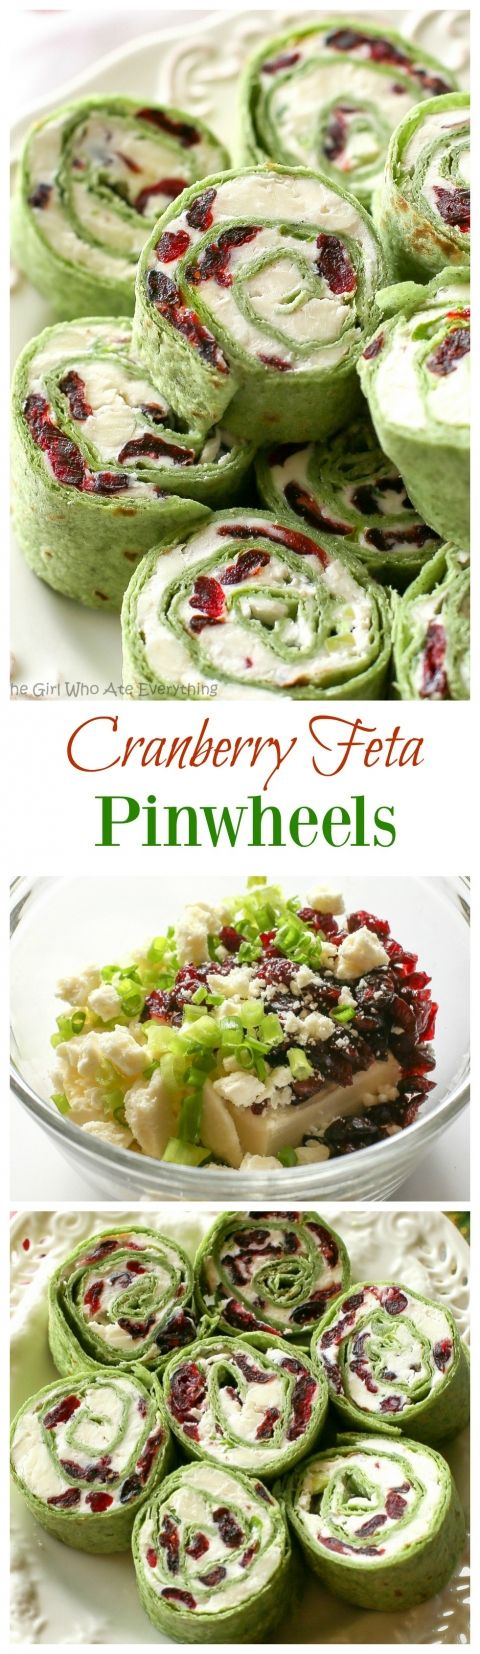 Cranberry Feta Pinwheels: a sweet and salty combo that's perfect for a Christmas appetizer. the-girl-who-ate-everything.com